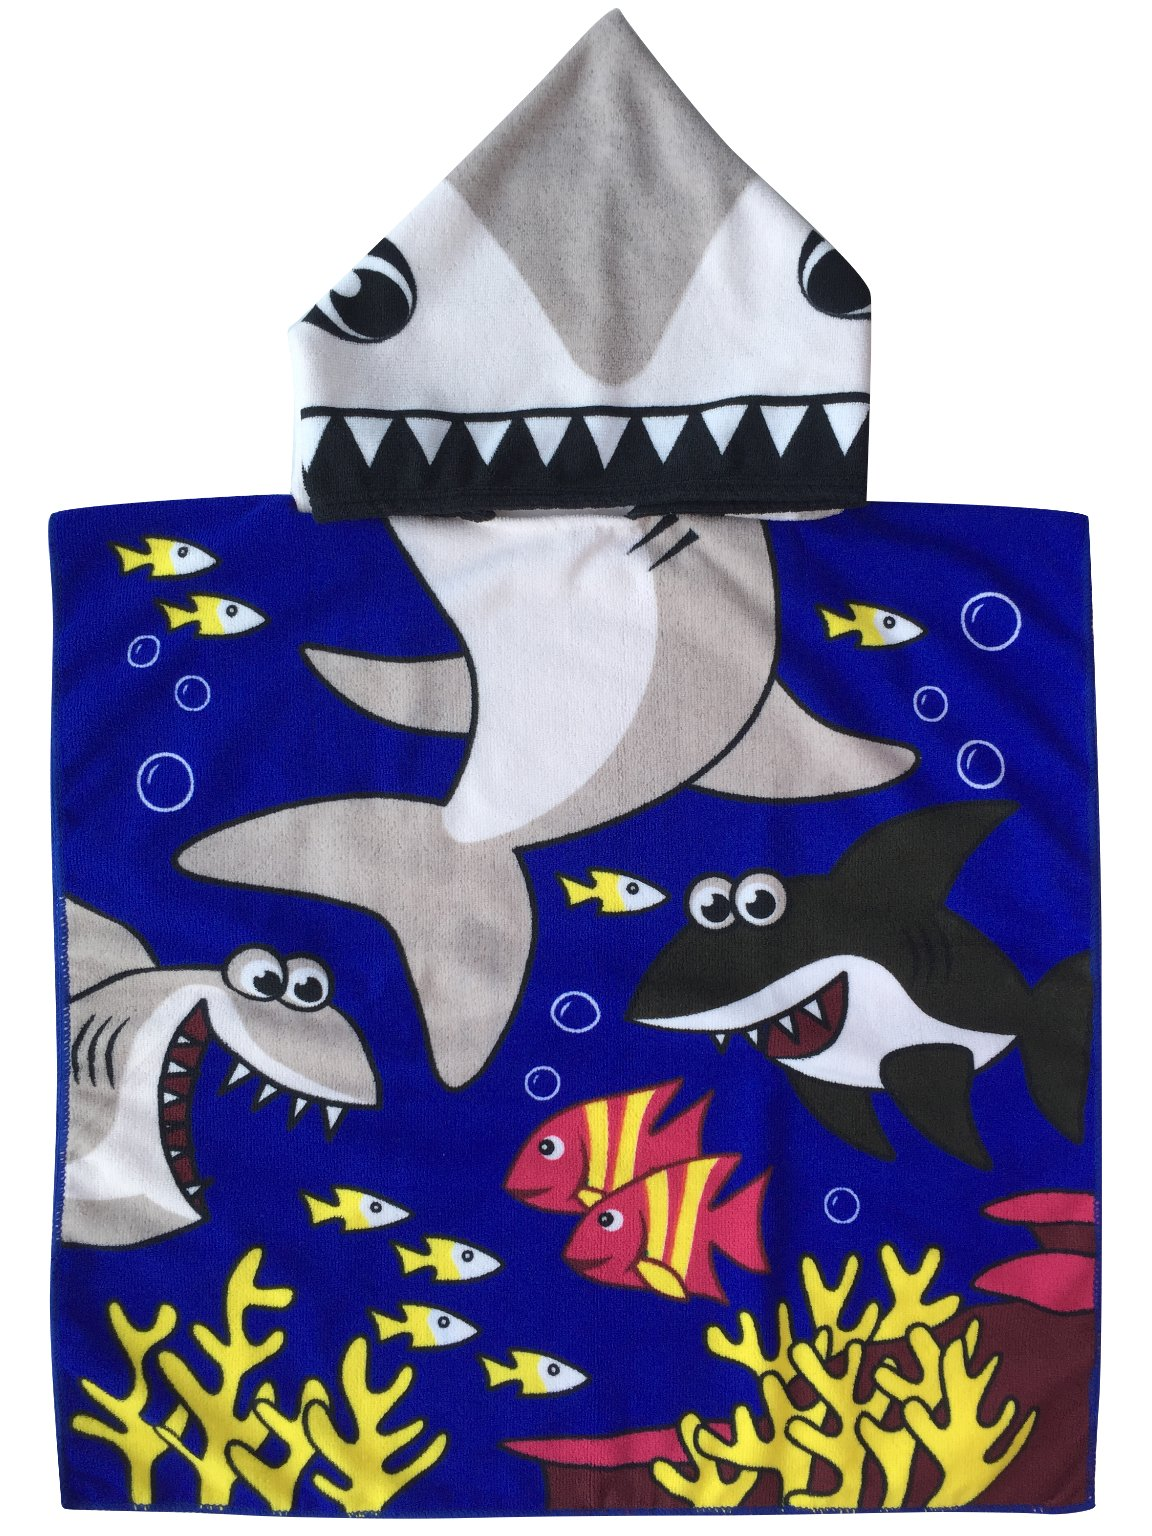 a3a6fbb3a6 Get Quotations · Tiger Shark Hooded Poncho Towel for Kid   Baby Boys  Multi-use Beach Bath Pool